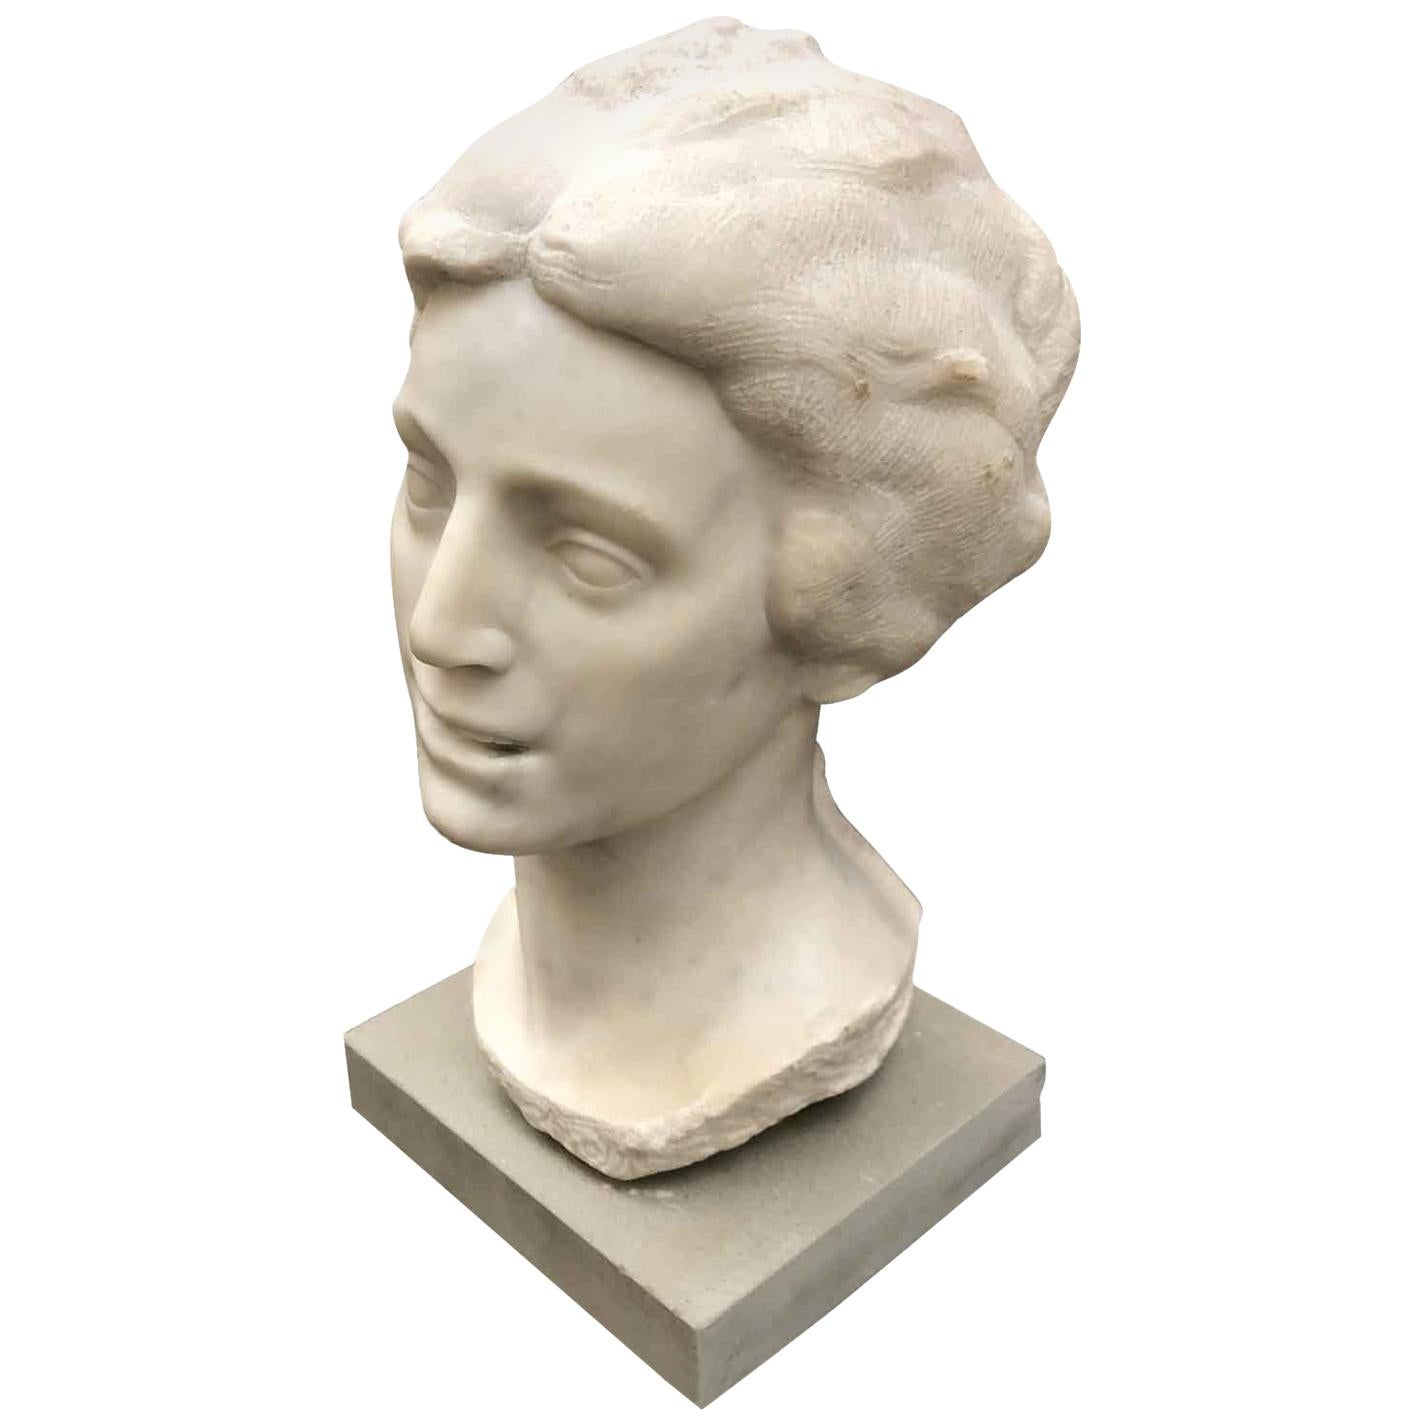 20th Century Italian Smiling Girl Bust White Marble Sculpture by Bossi Aurelio